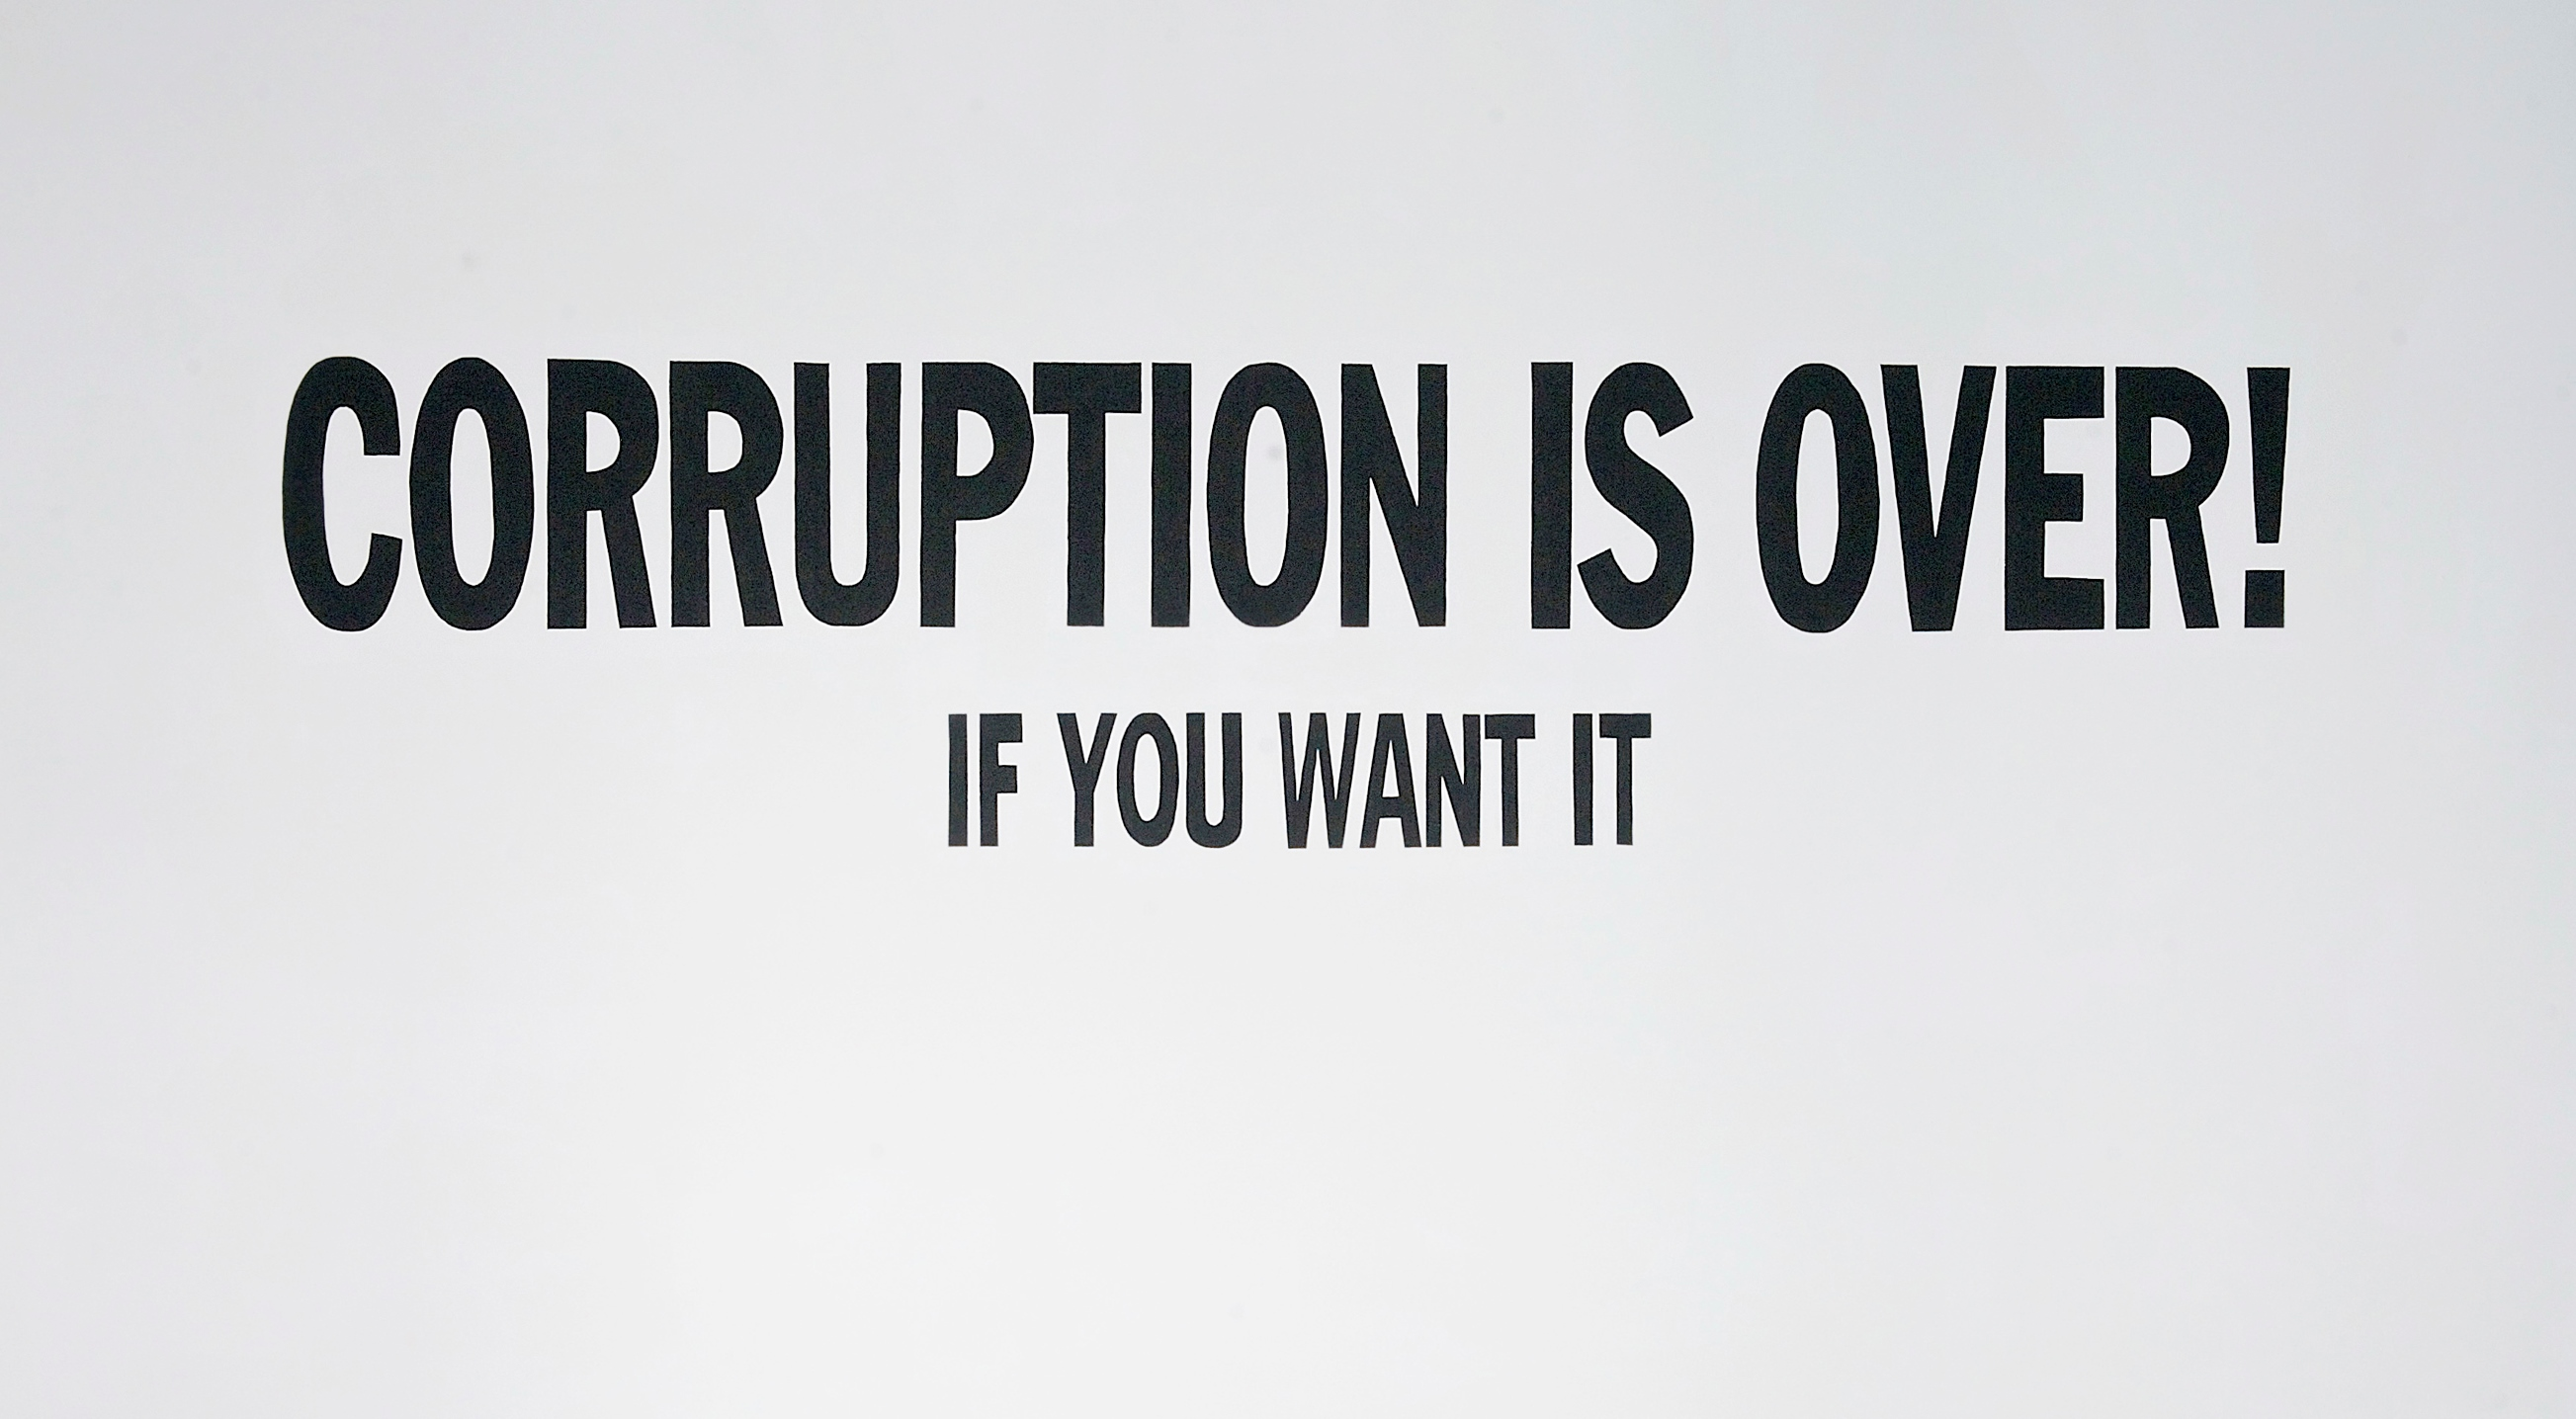 Corruption Is Over! If You Want It